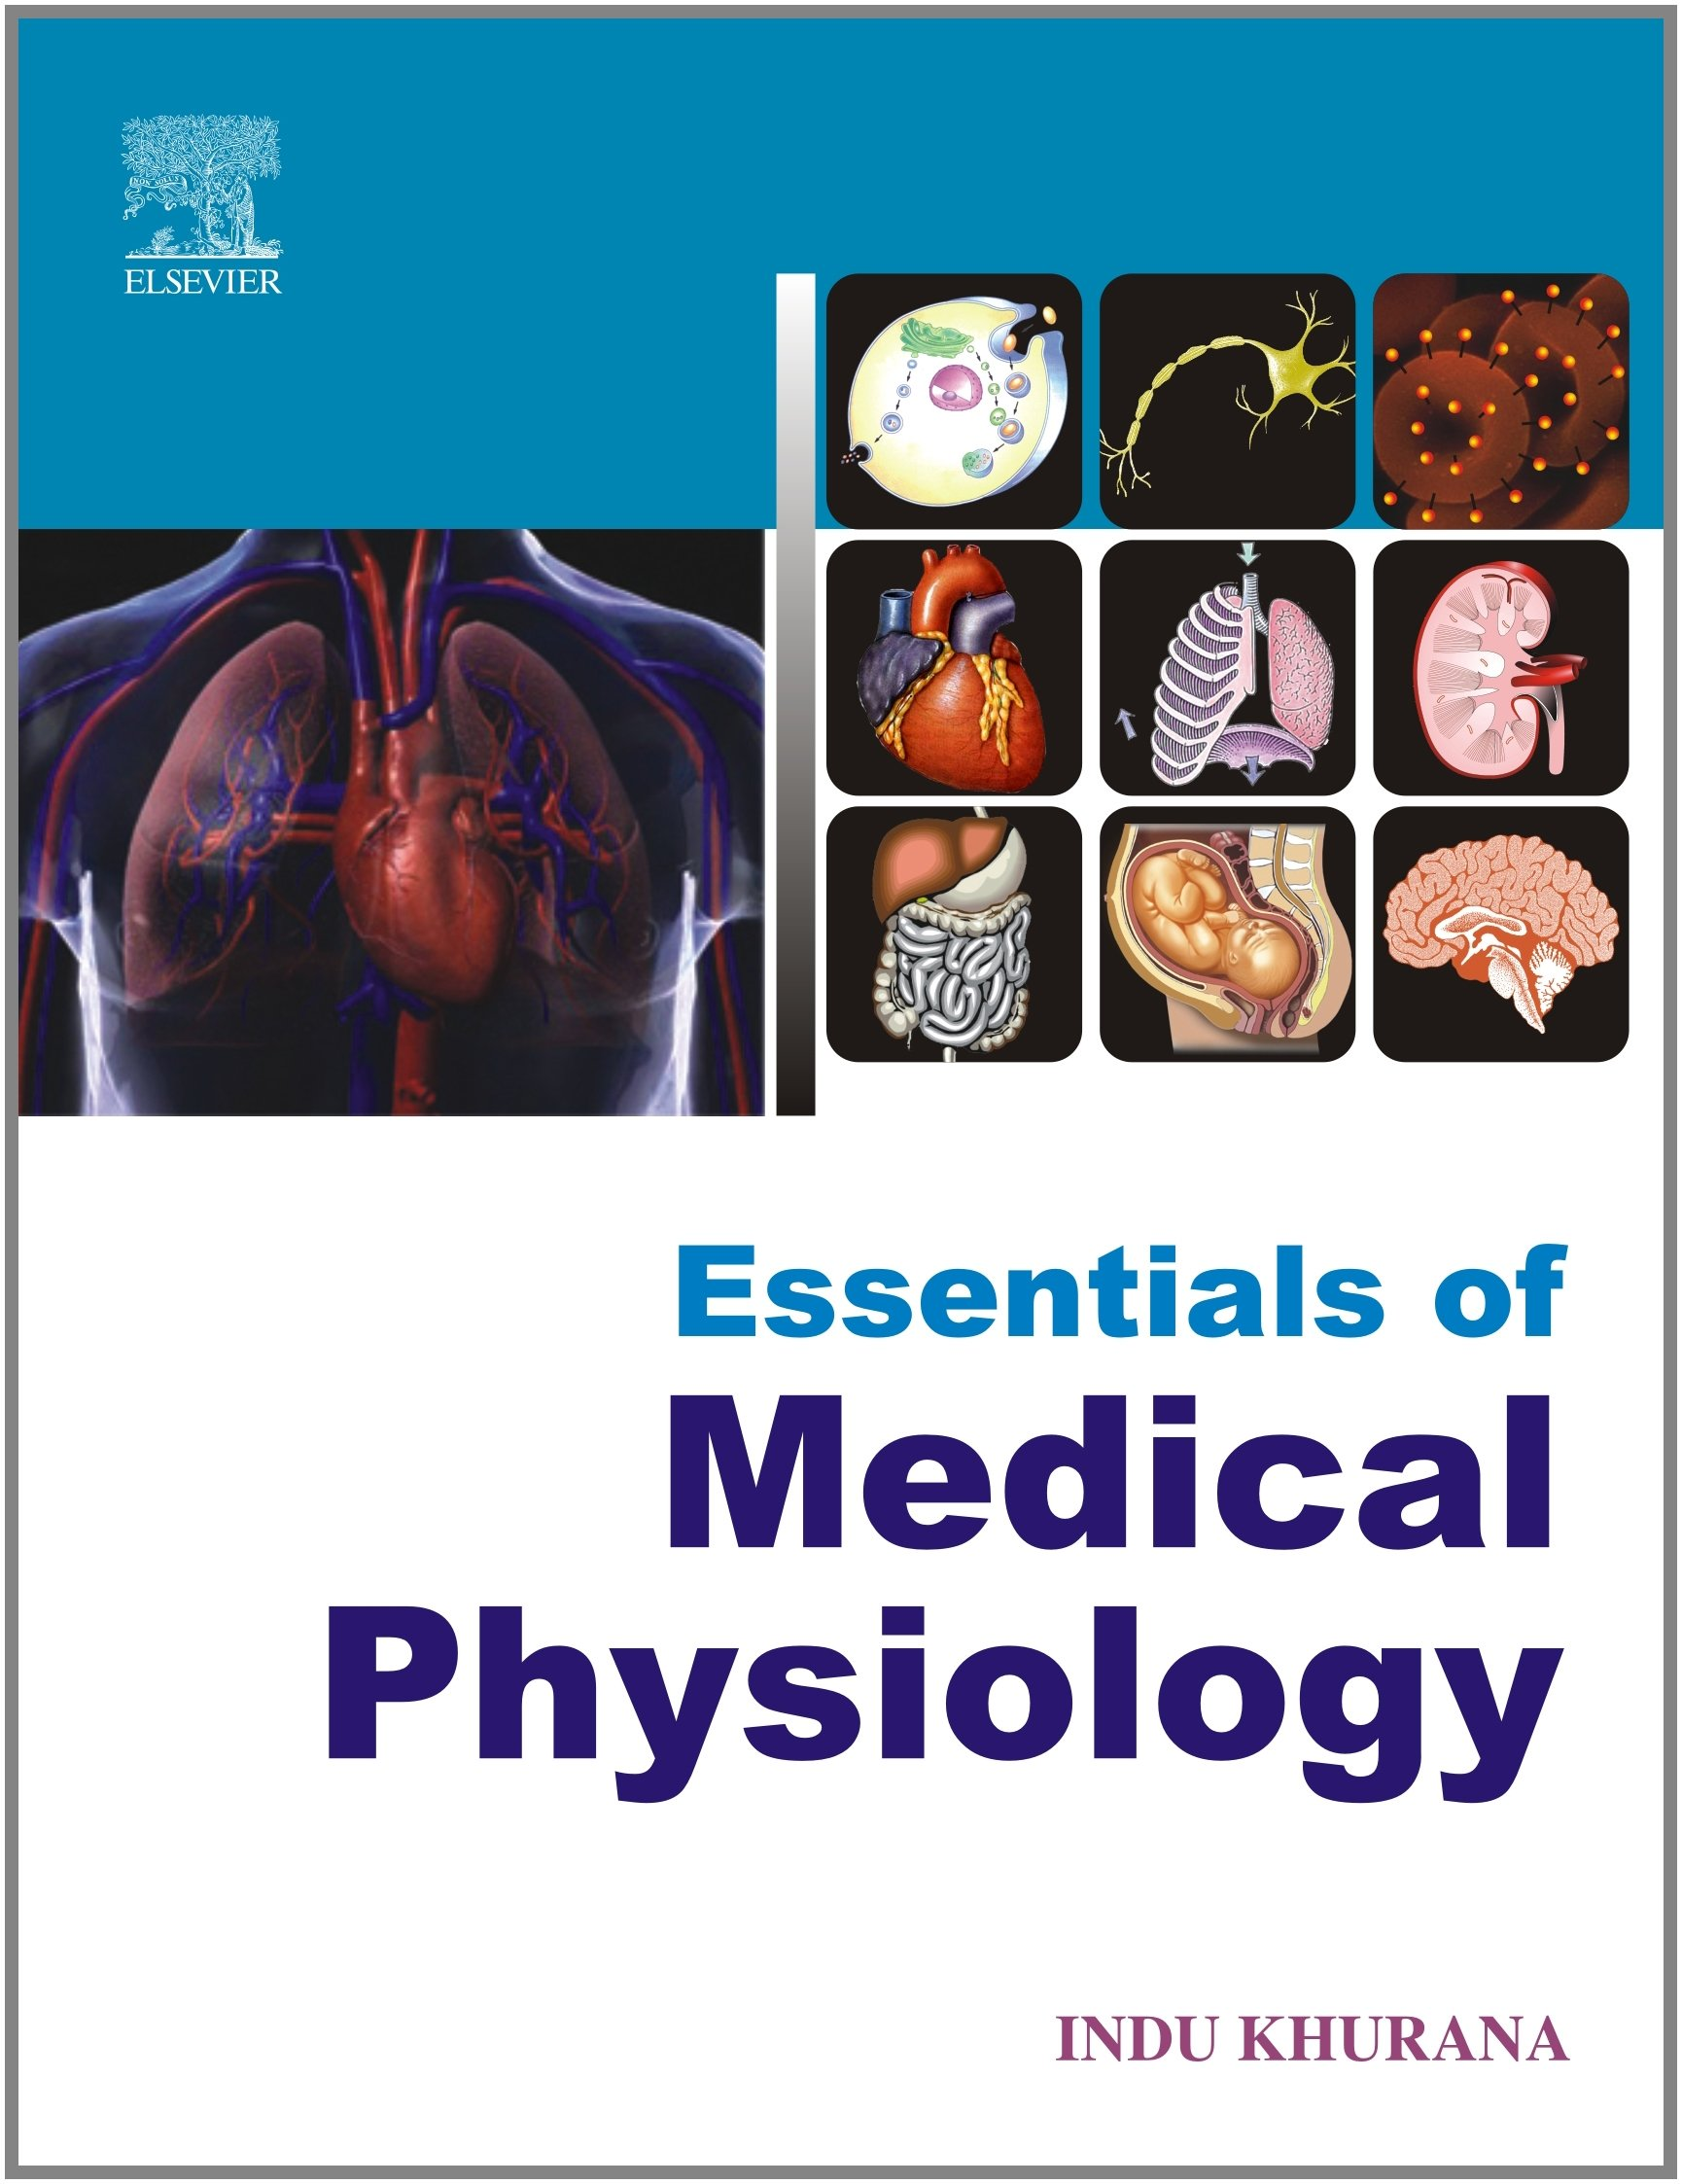 By textbook ebook of medical physiology download free khurana indu